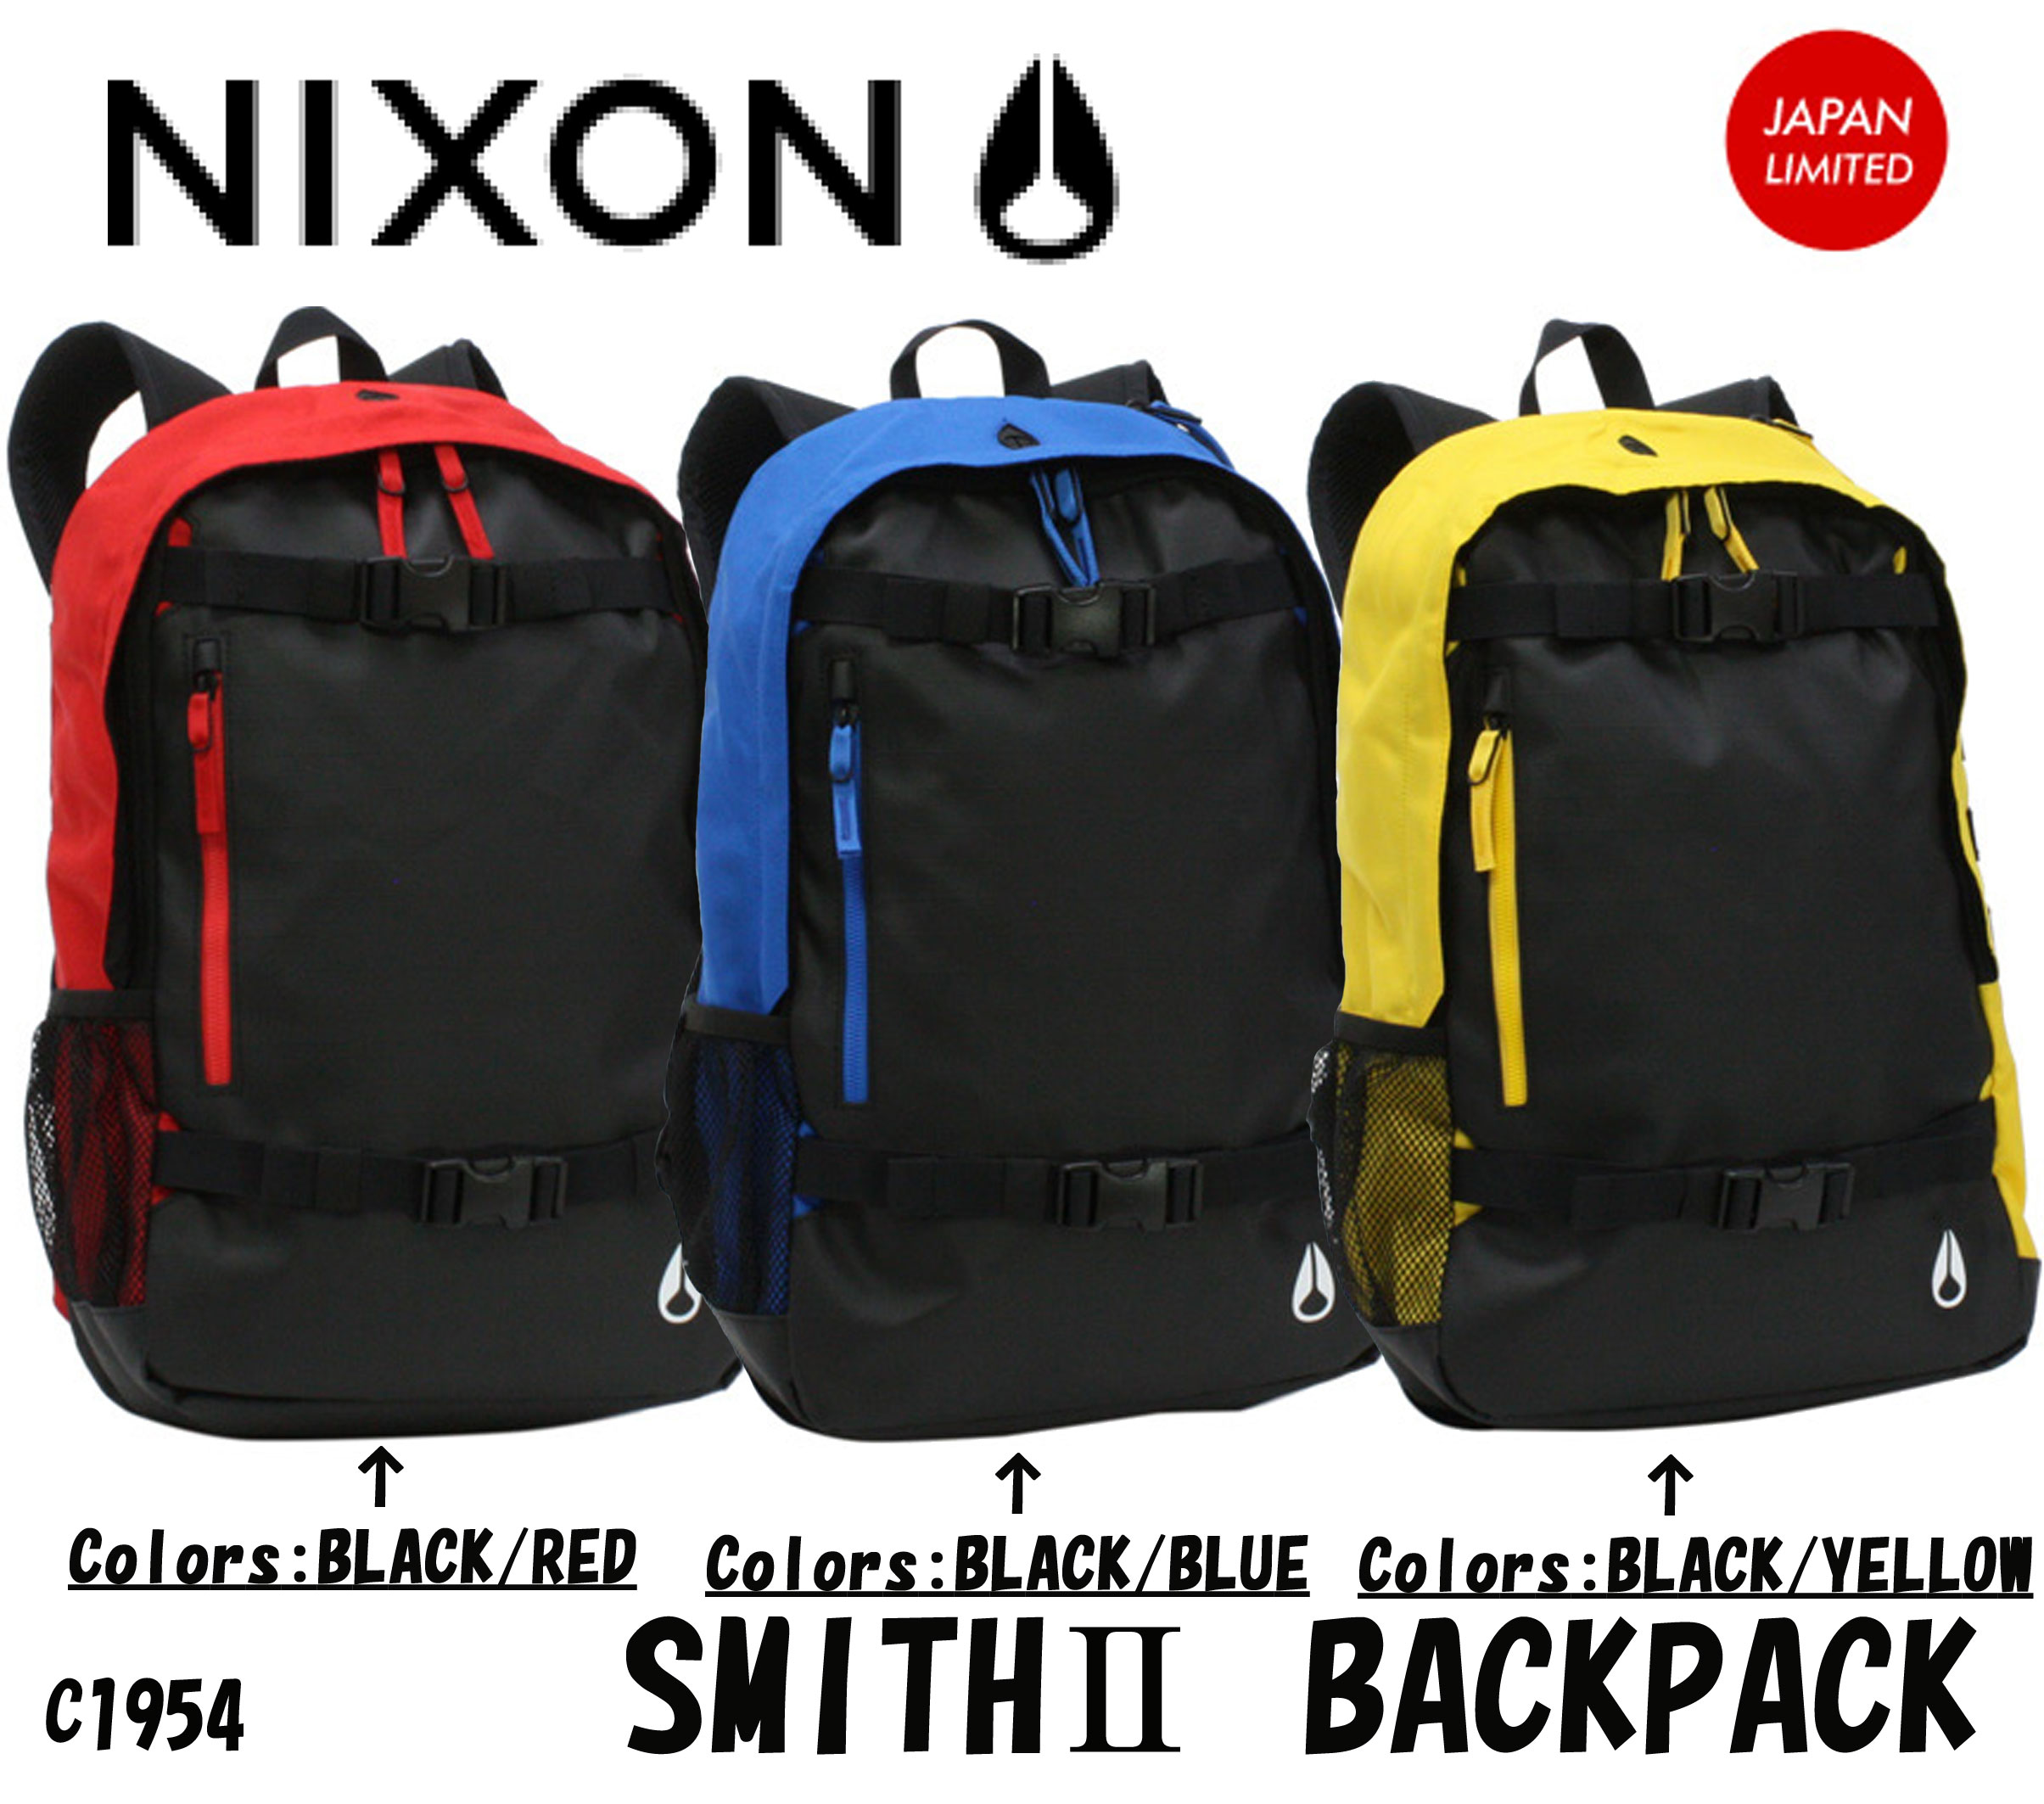 nixon_backpack_smith2_japan_limited_mein1